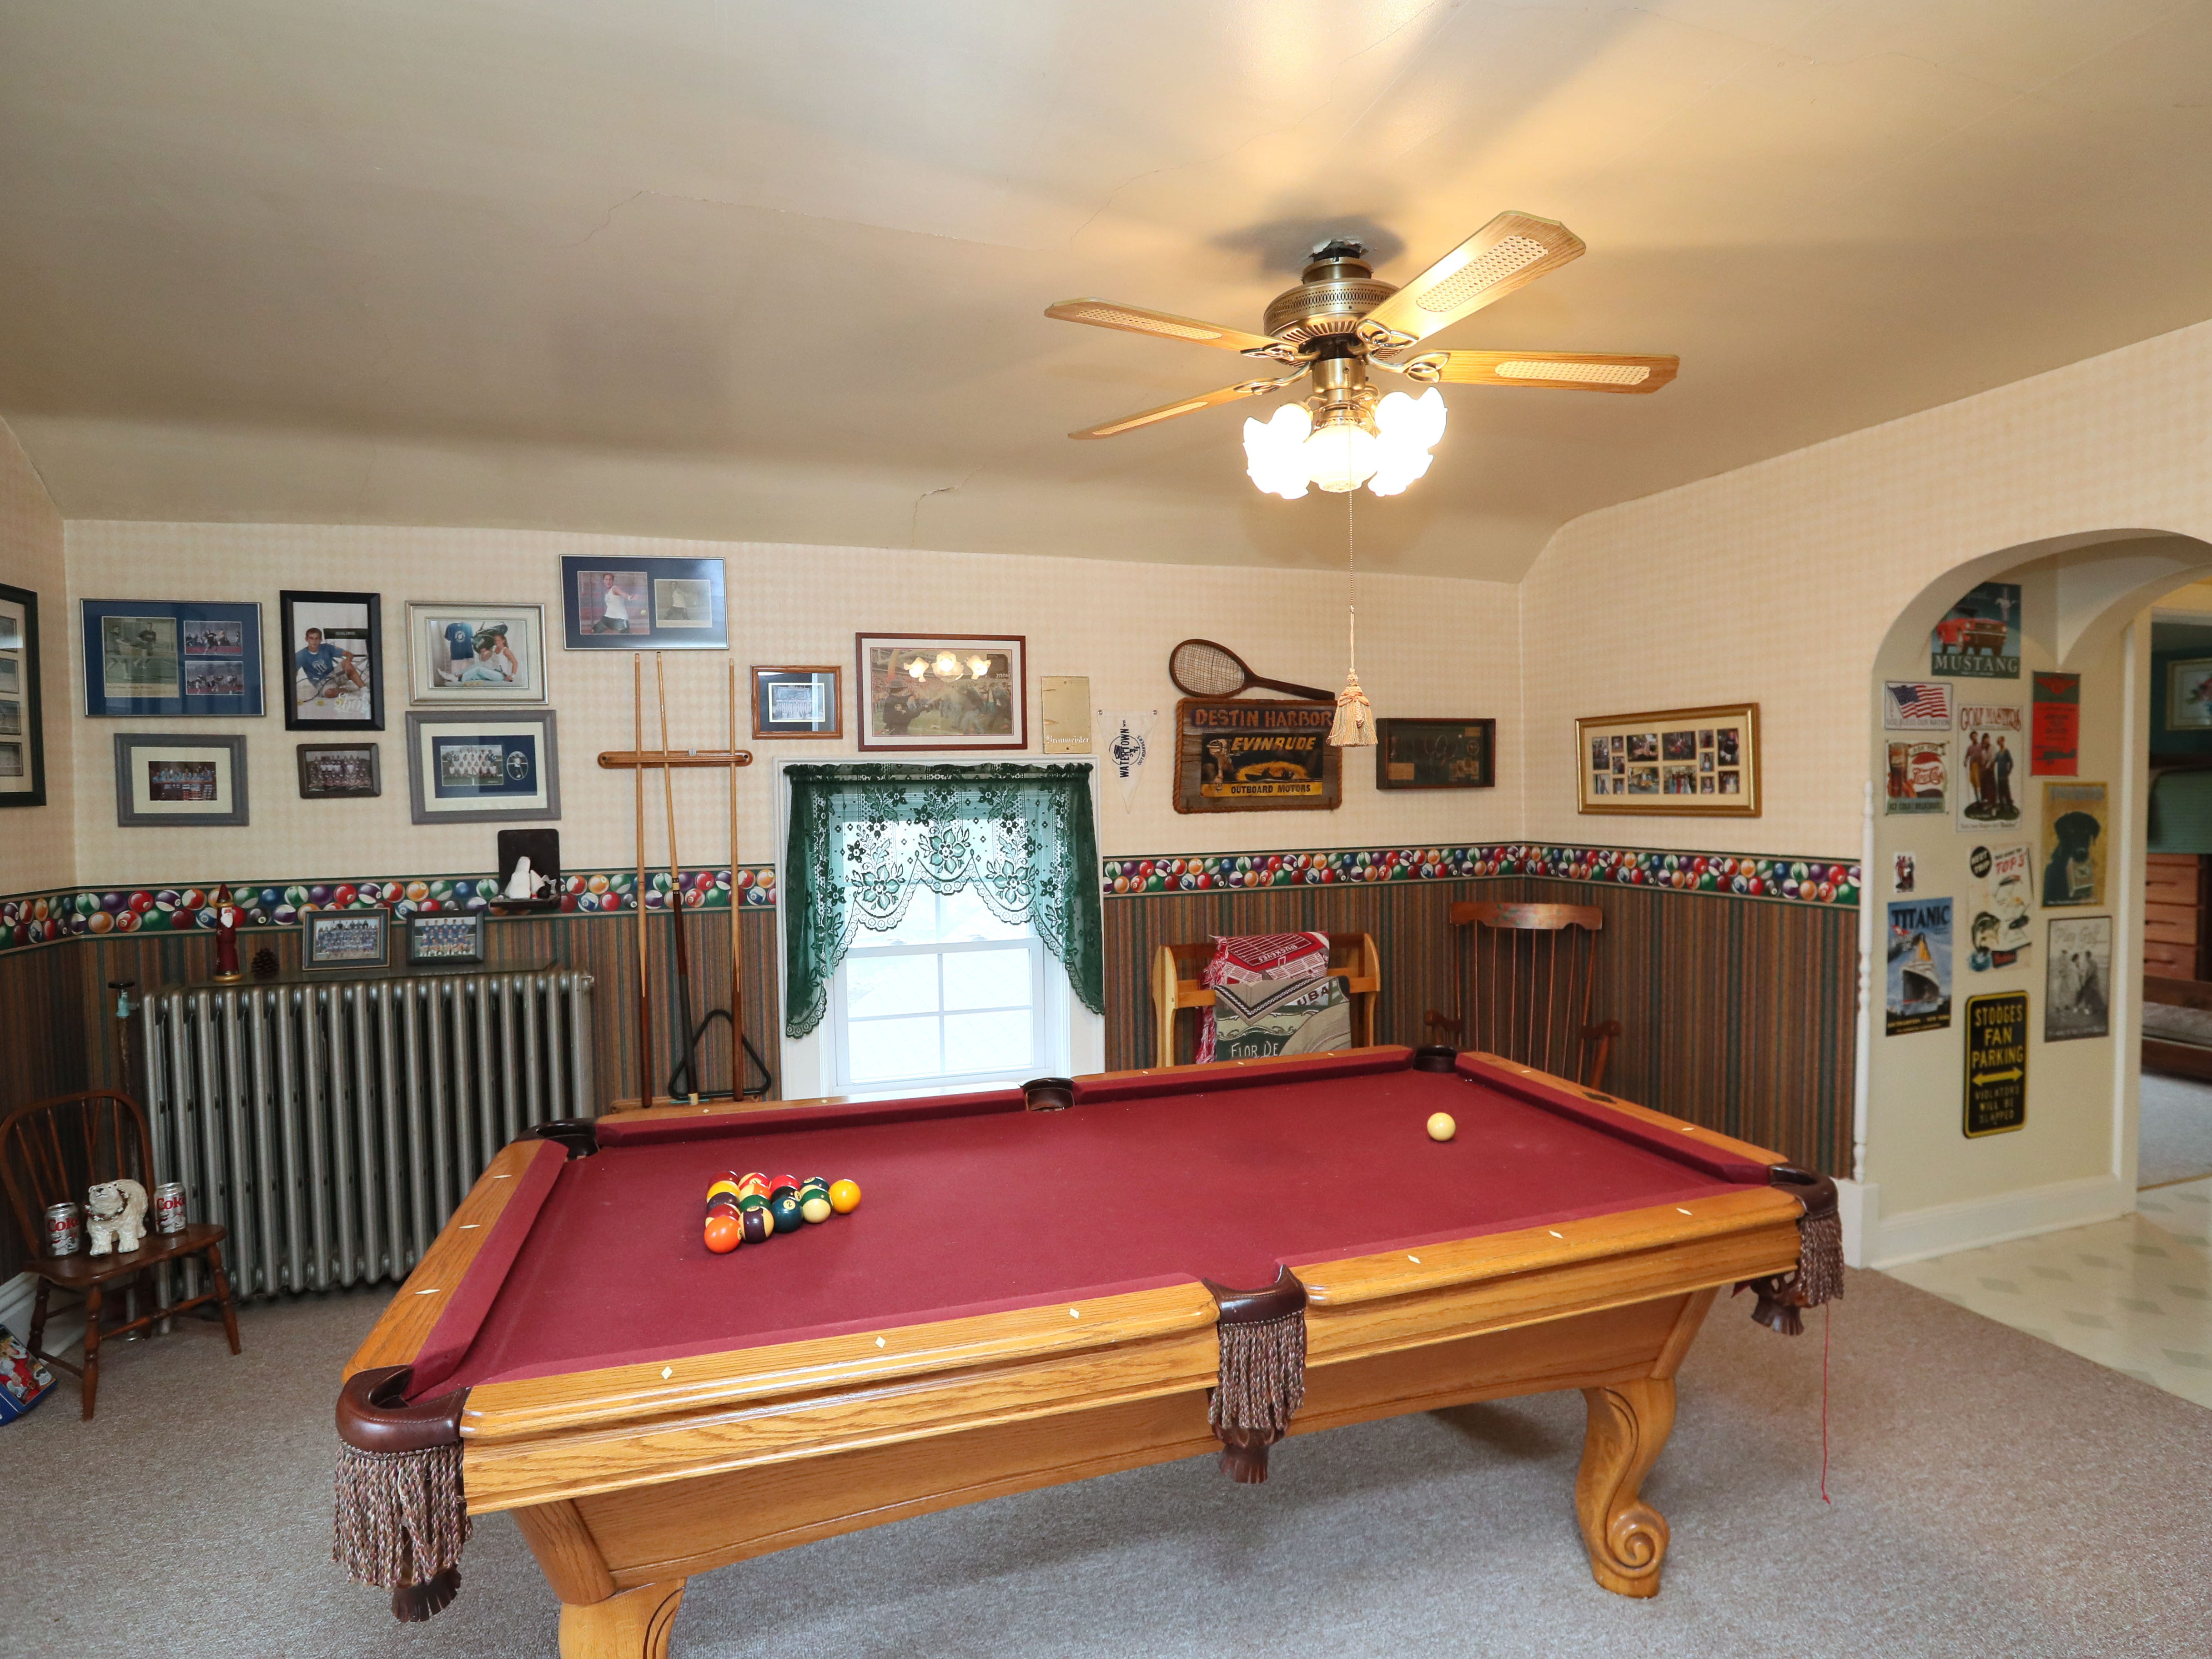 The second-floor game room has a pool table.